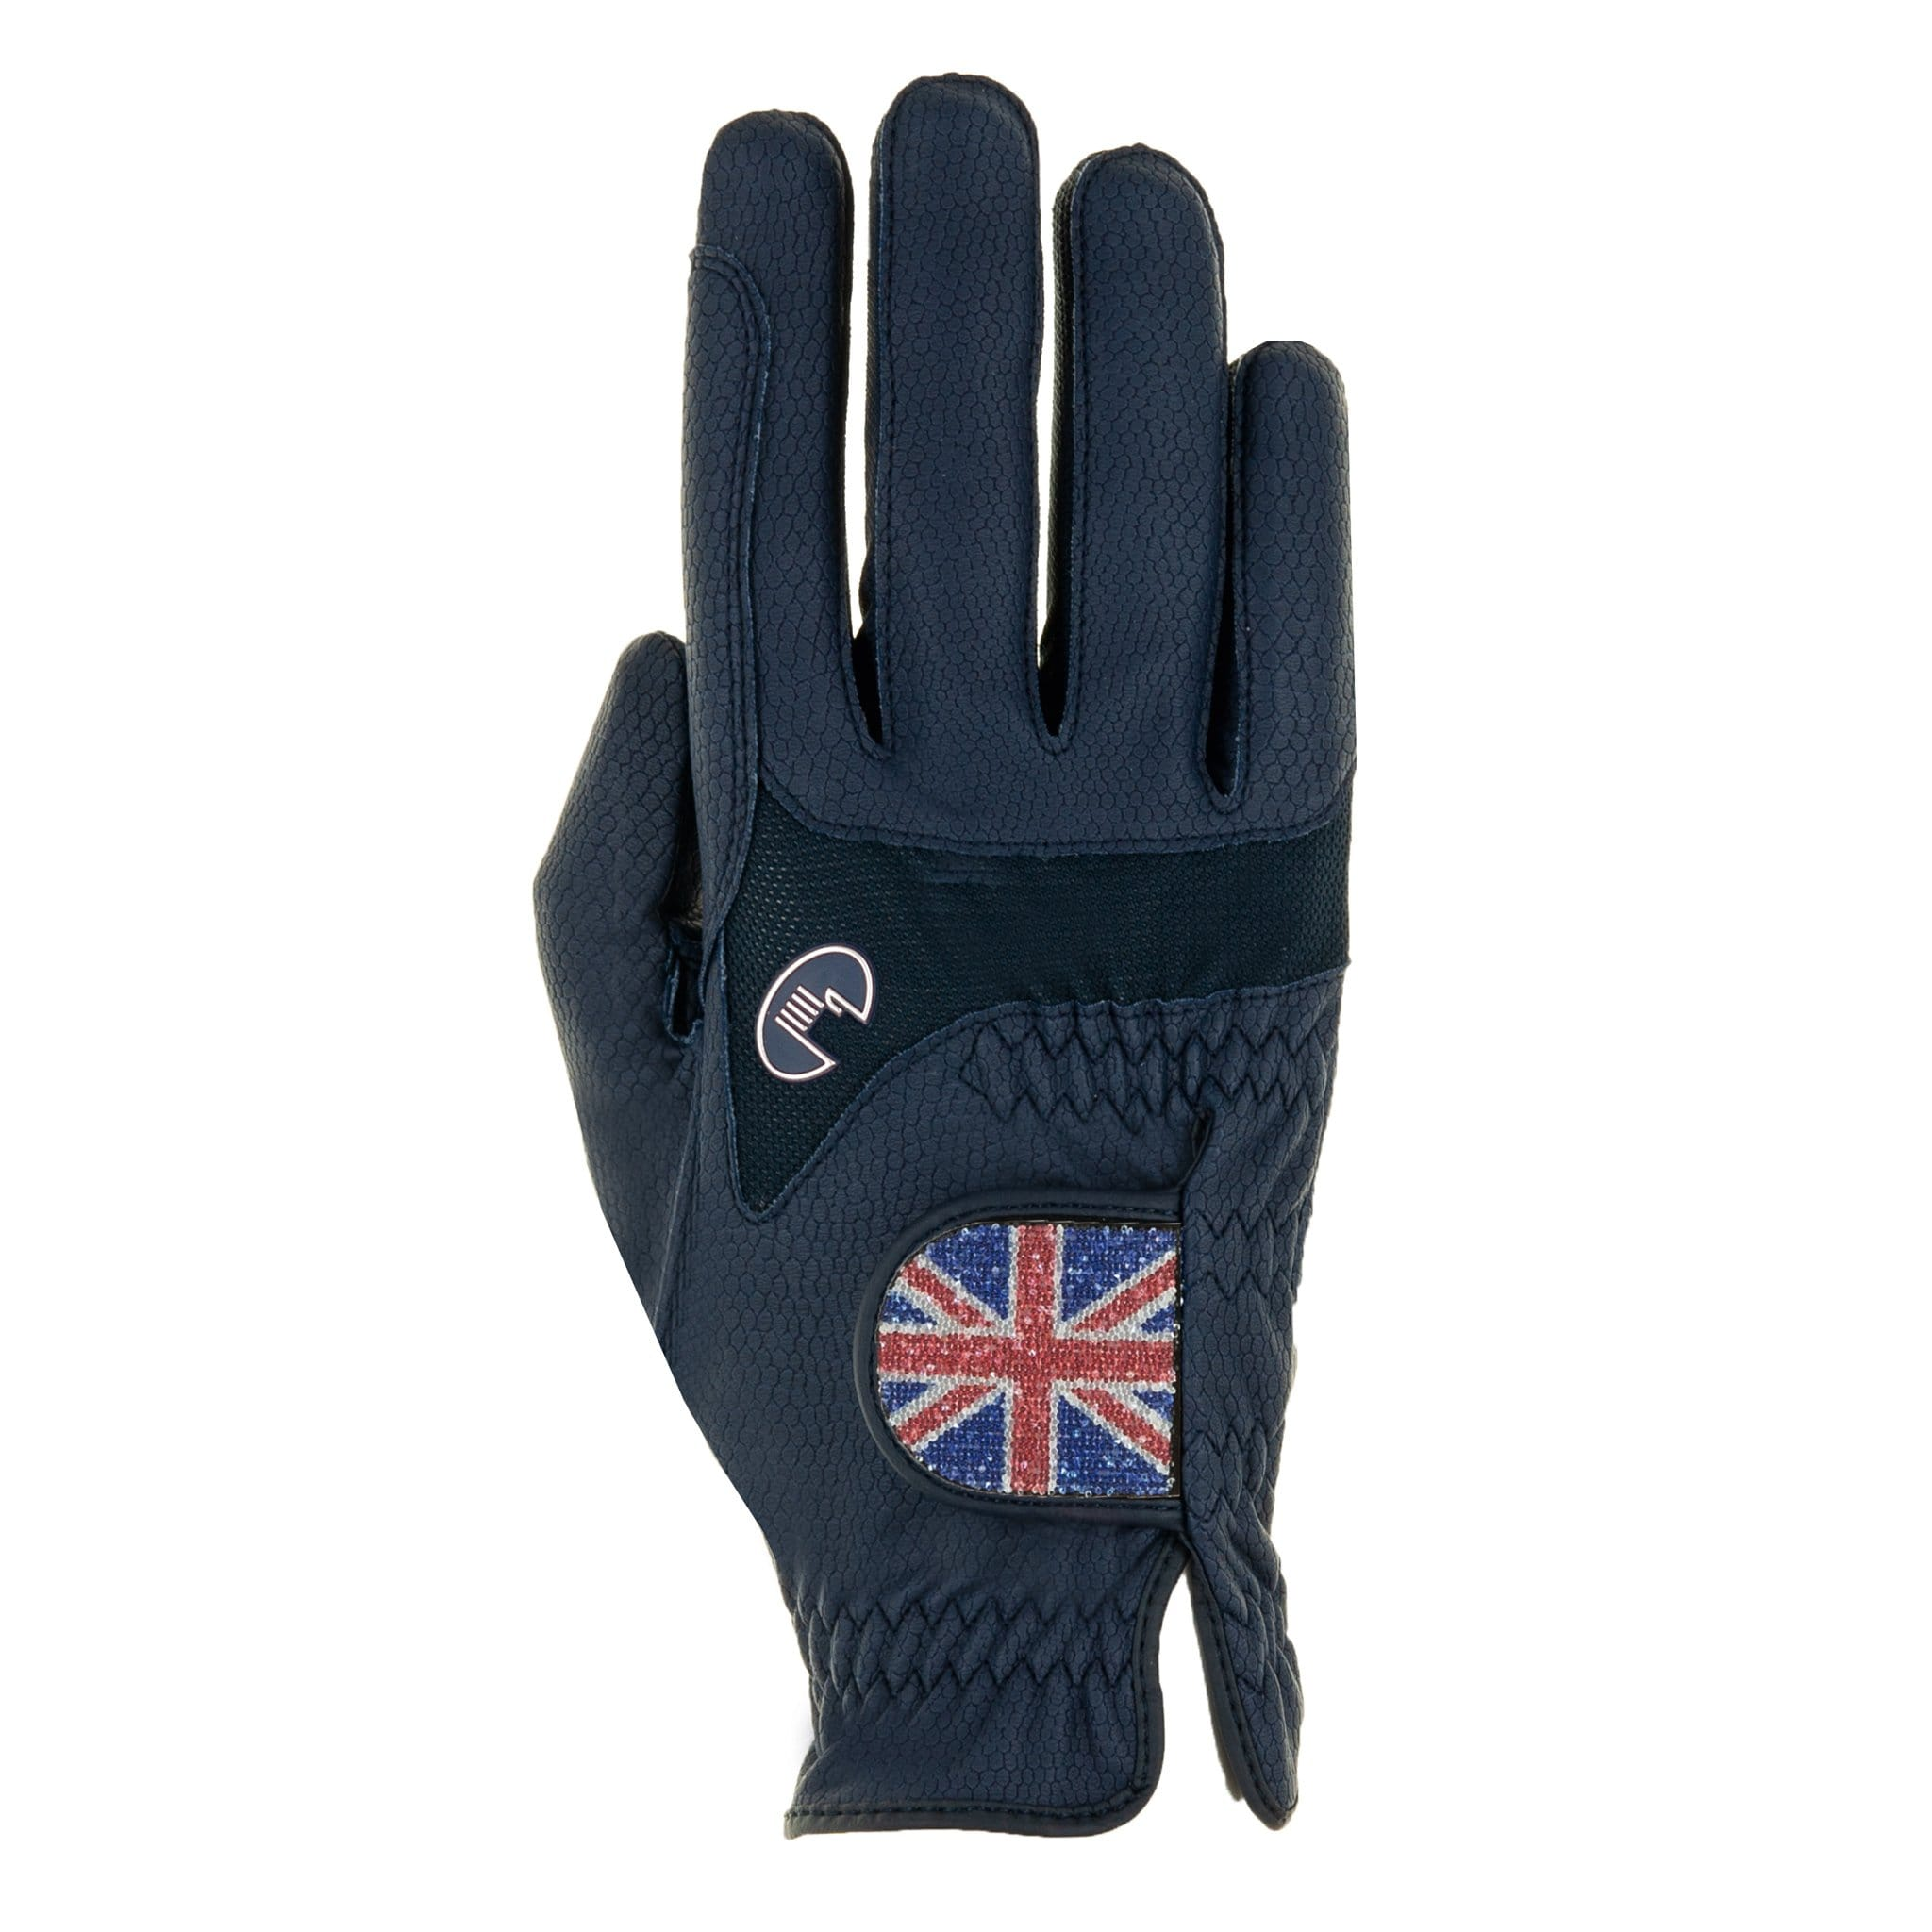 Roeckl Maryland Gloves 3301-282 Navy UK Flag Studio